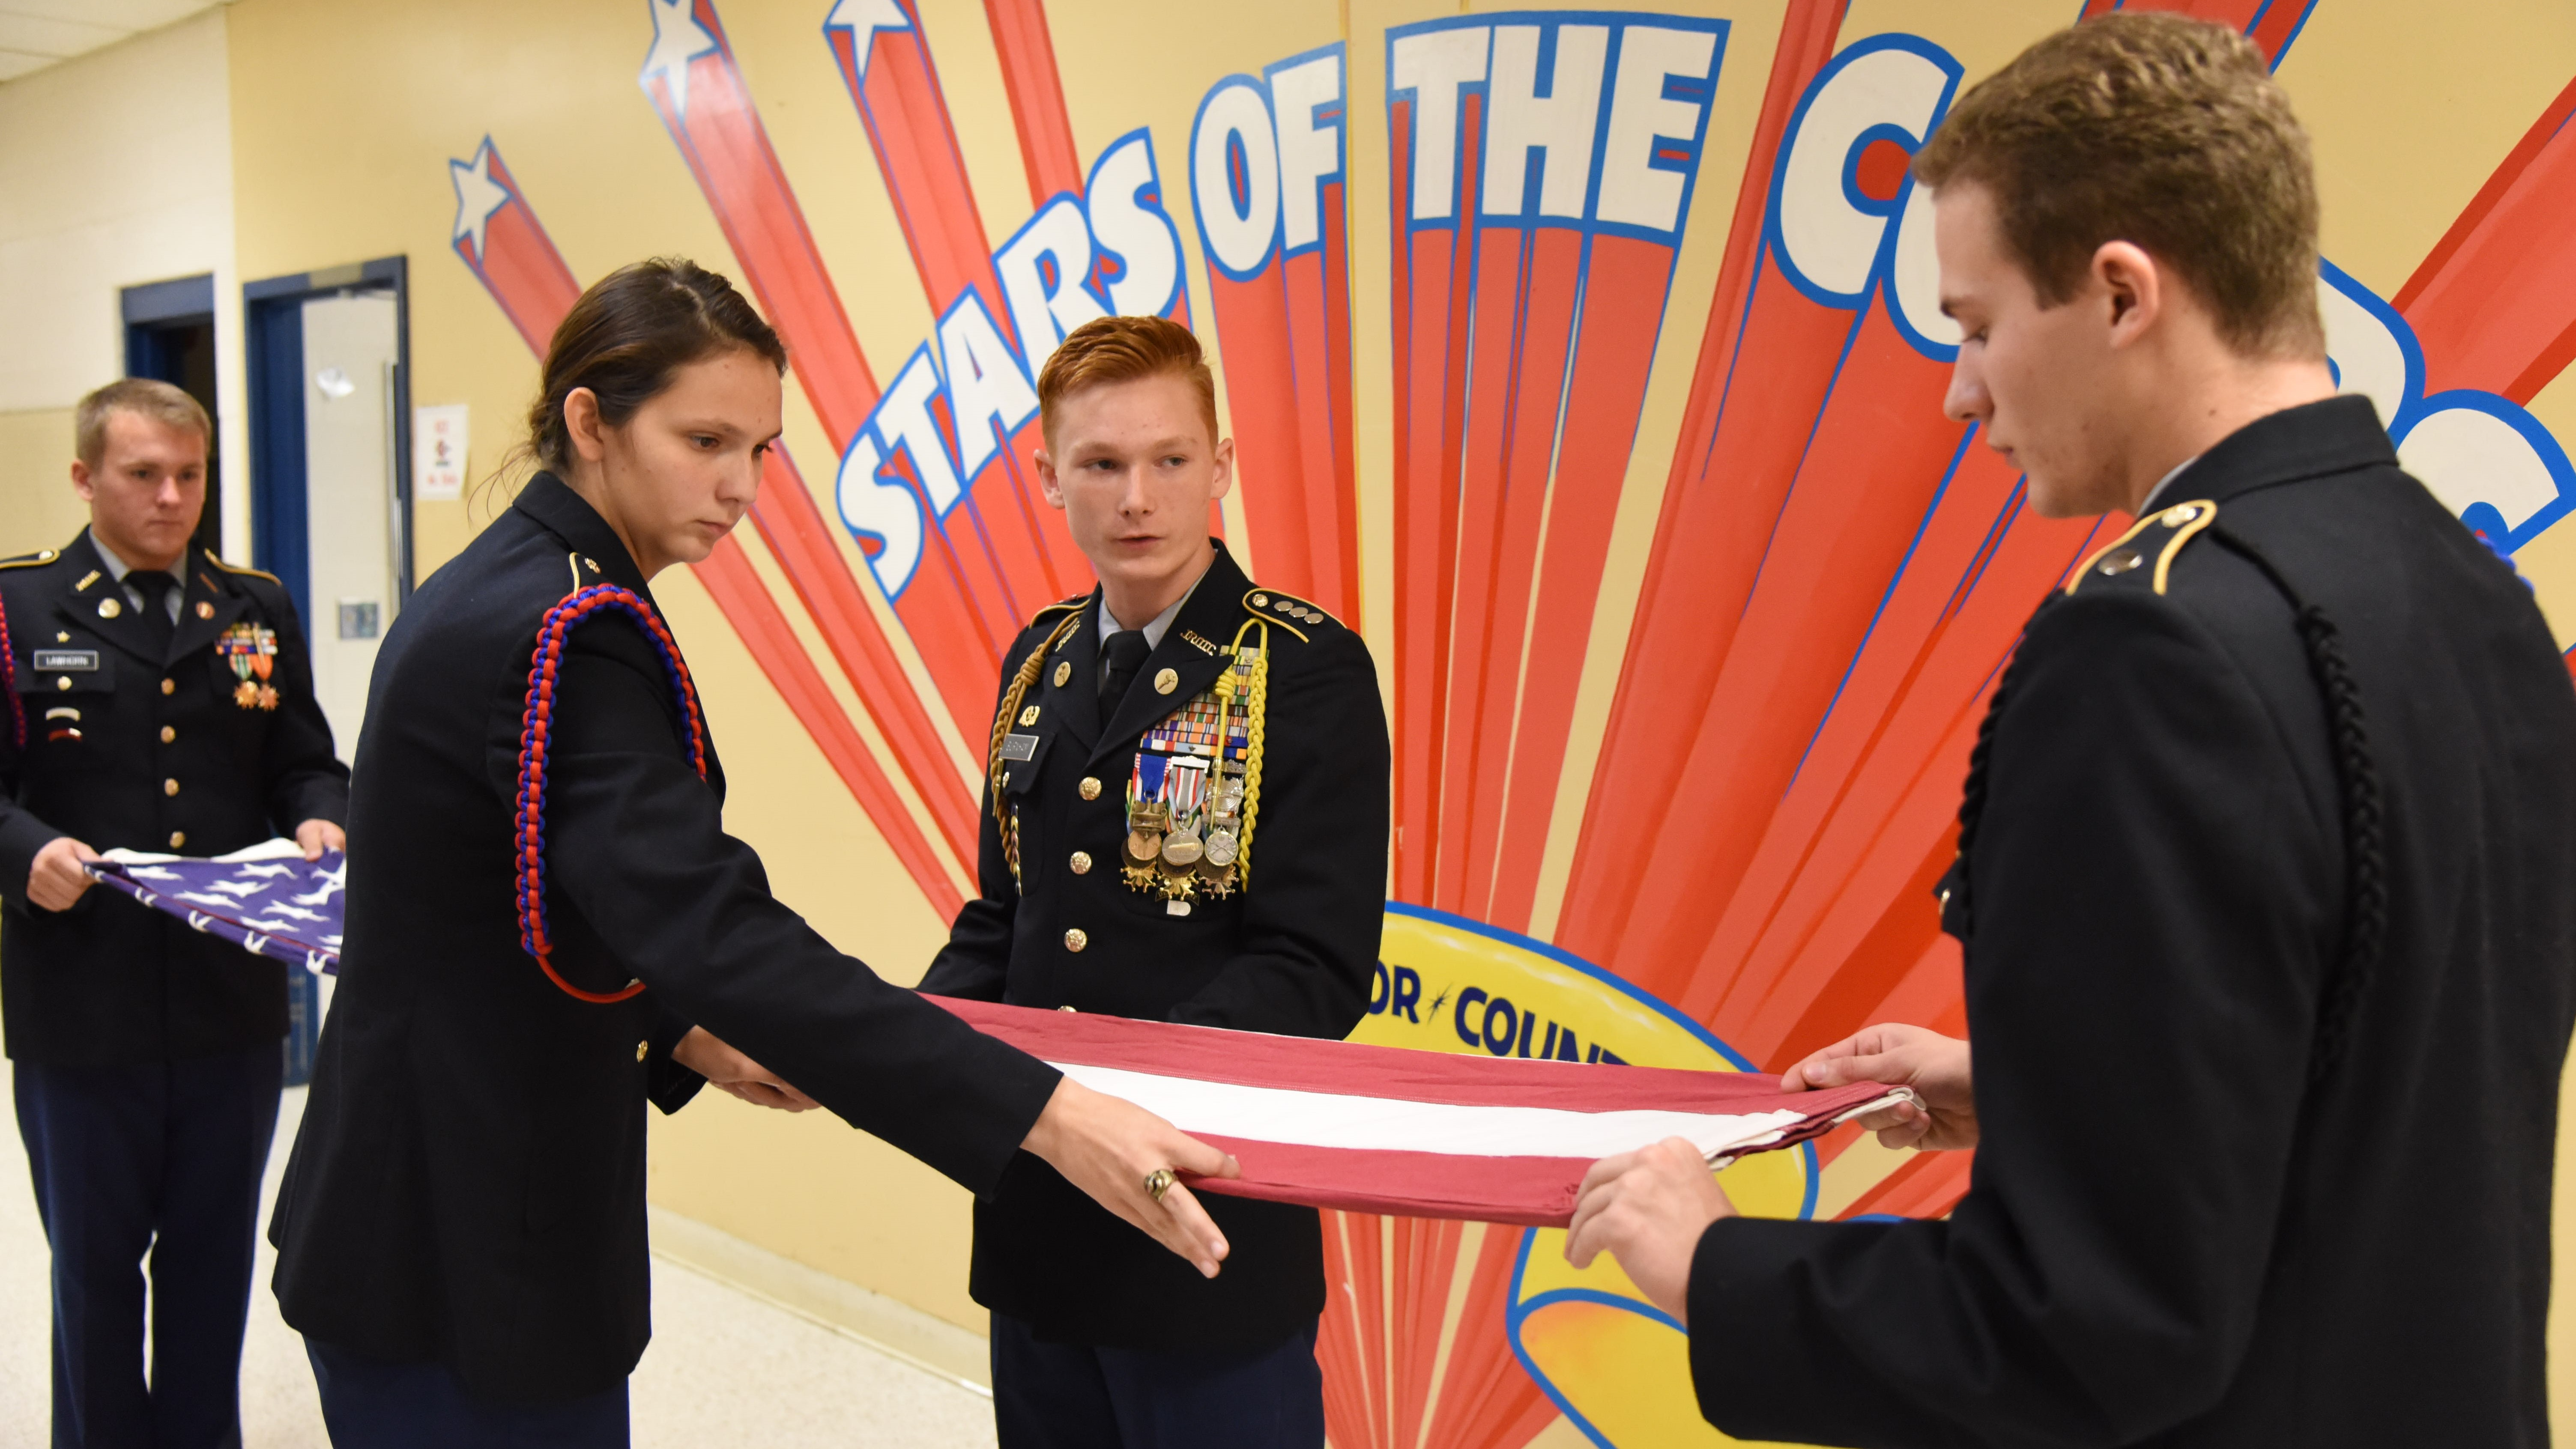 Cadets from South-Doyle High School's JROTC Cherokee Battalion fold a flag in preparation for a retirement ceremony next year. From left to right are Taylor Lawhorn, Kaitlyn Scalf, Avery Burnham and Justin Shipes.